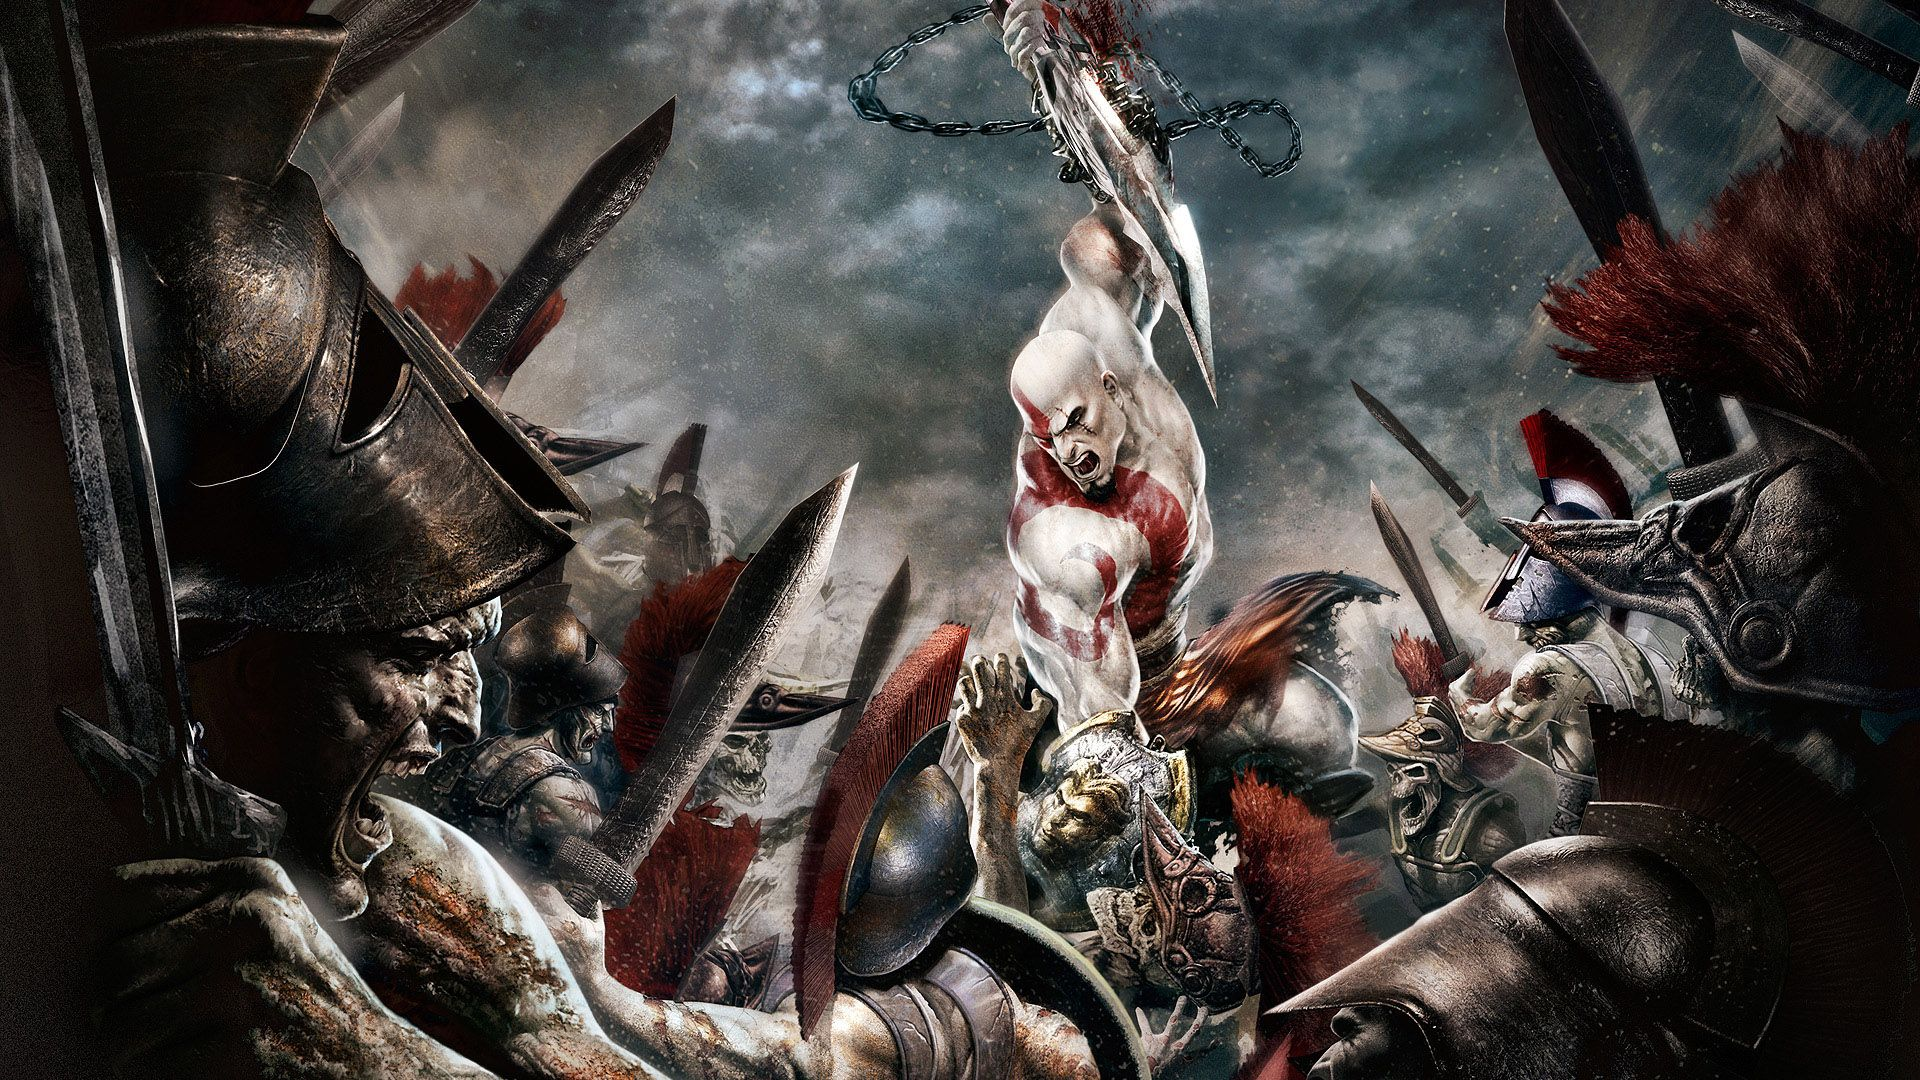 god of war hd desktop wallpaper high definition fullscreen